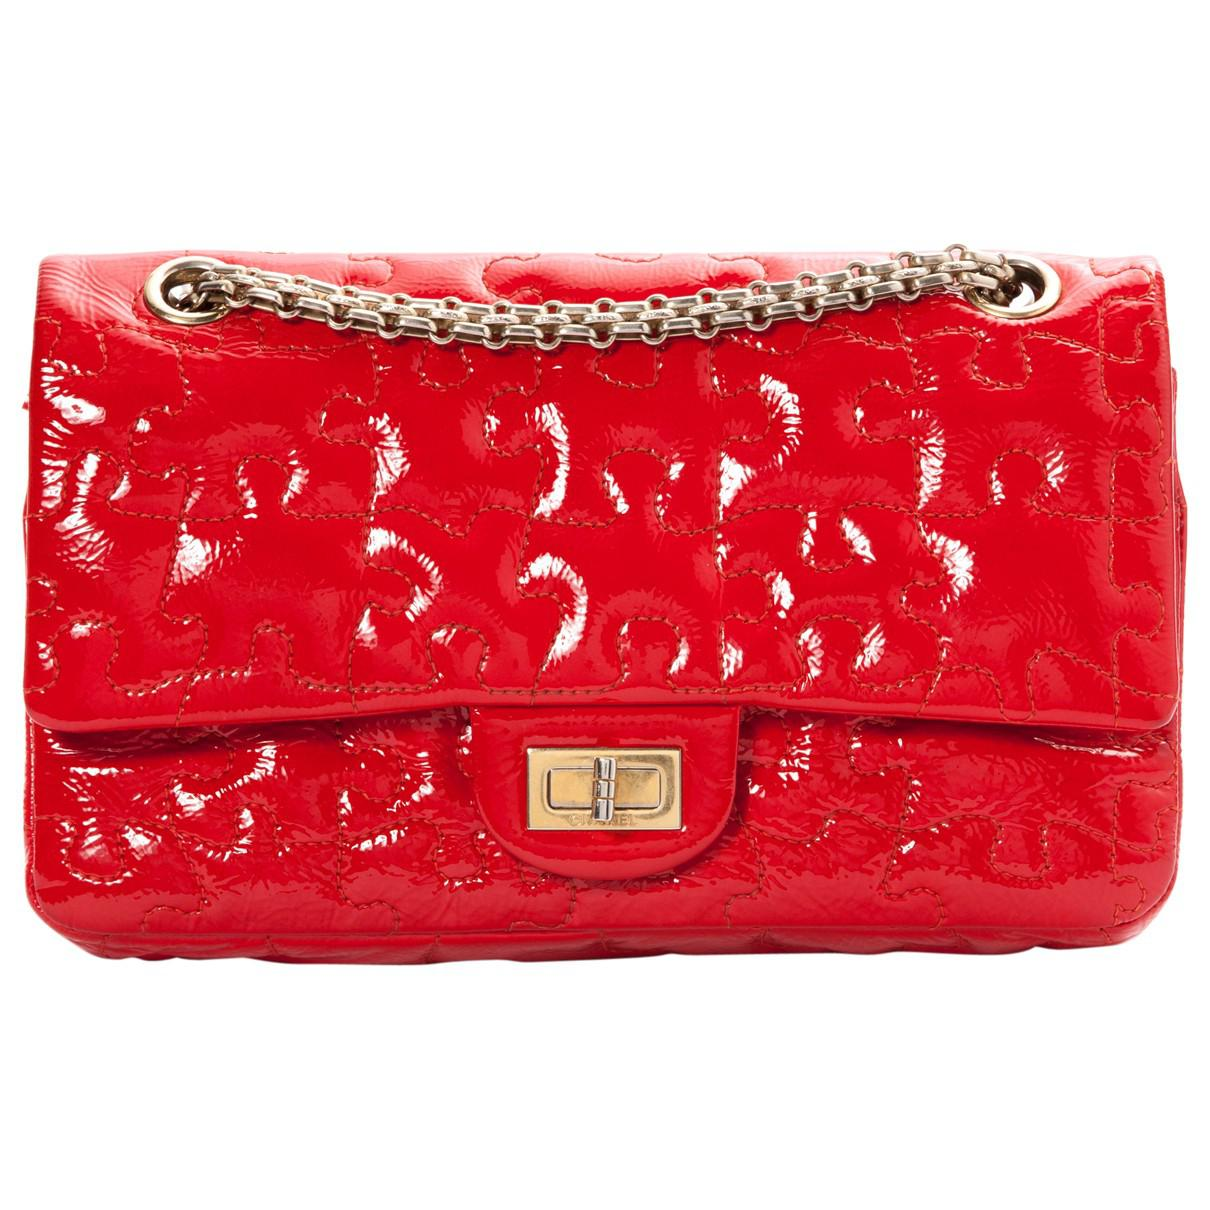 Chanel Women S Pre Owned Red Patent Leather Handbags